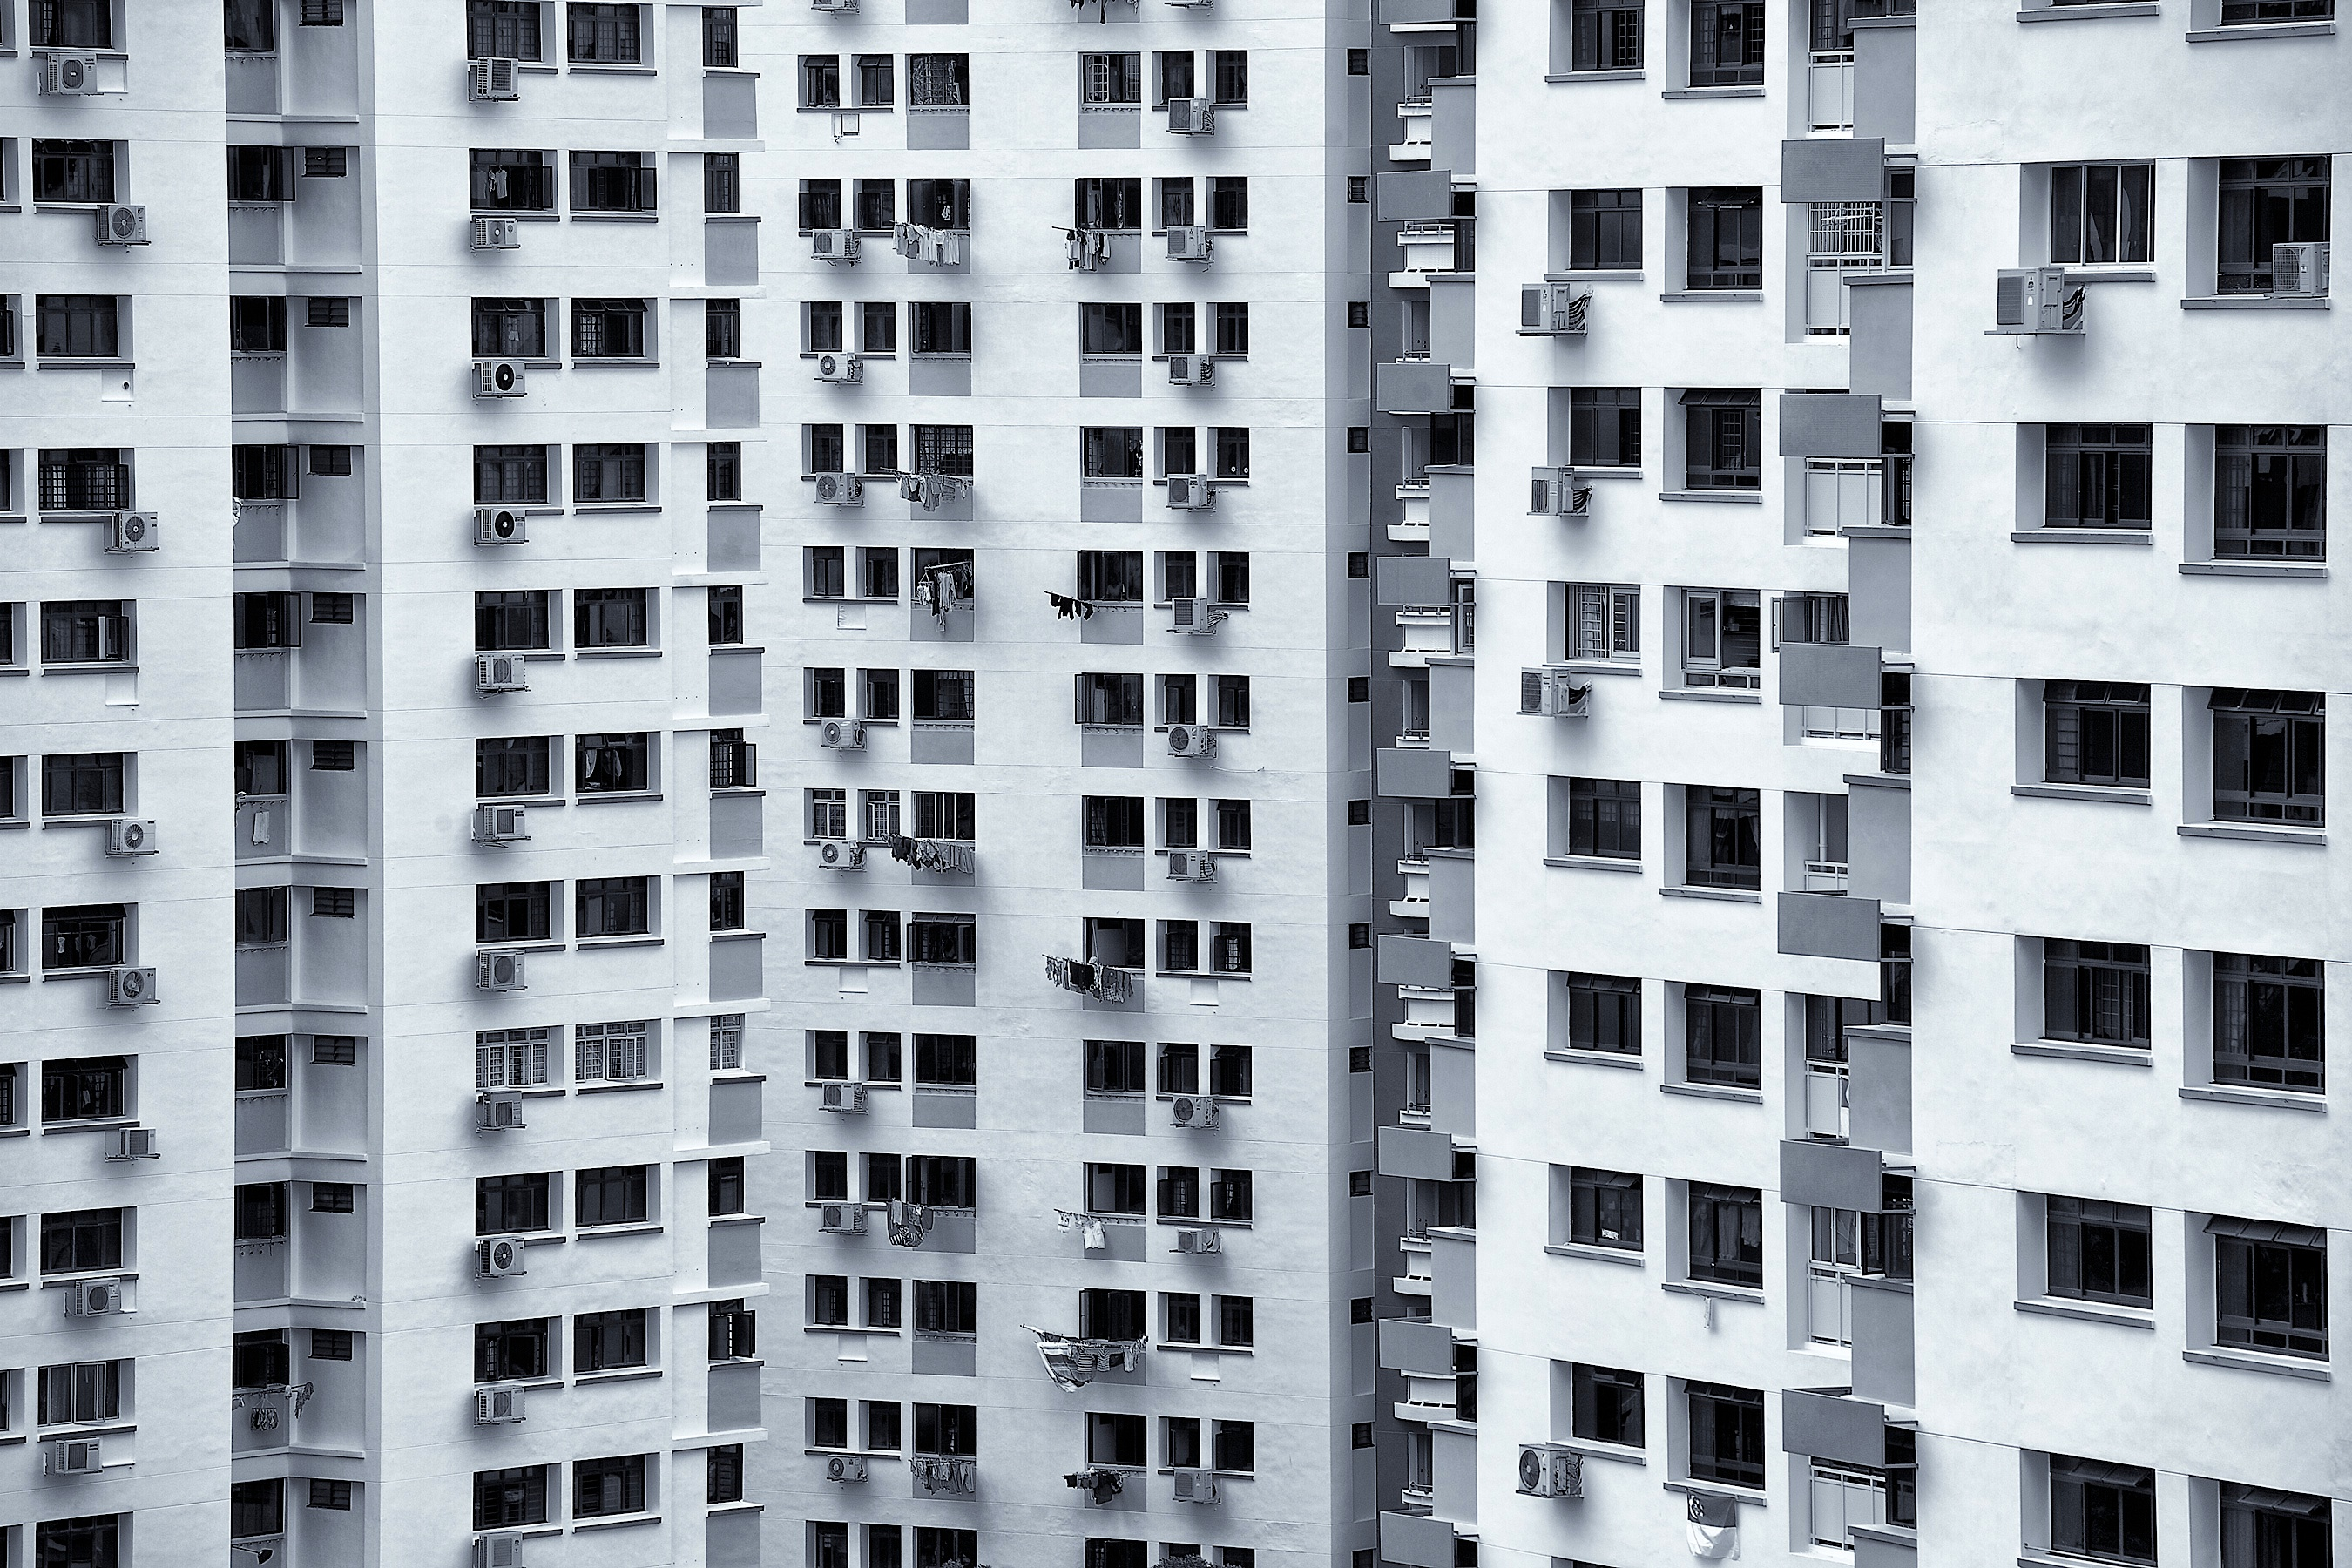 Part of the Patterned Heartlands Series. This image is taken as part of a Monochrome series showcasing Singapore's high-rise residential flats. Going towards an artistic vision, I factor in shapes and patterns when creating the shot. This is a compression of several blocks that are built almost right behind and beside each other. Also a series to show how fast our population is growing in this little red dot. Canon 5DMII, 70-300mm L IS, Post-processed with Silver Efex Pro.